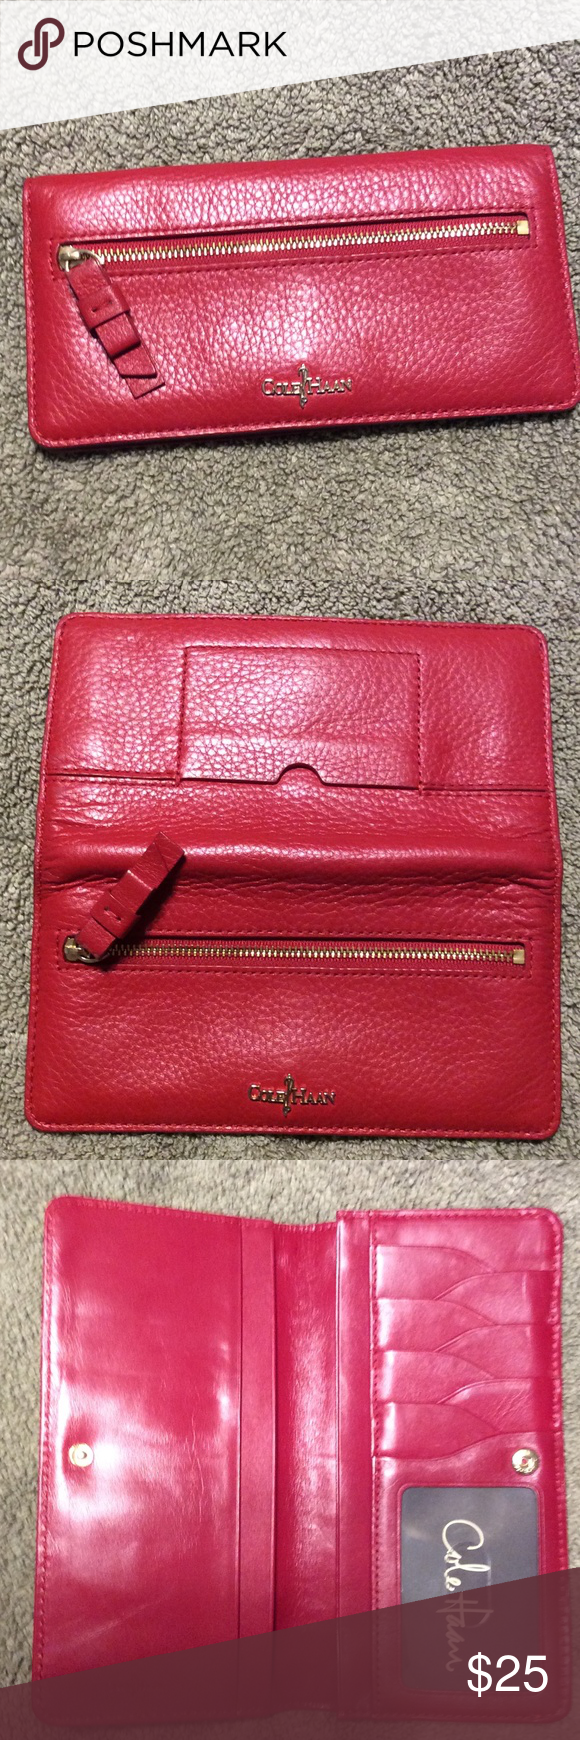 6ebdf3dd67 Cole Haan red leather wallet Red pebbled leather wallet. Snap  closure.outside ID slot. Outside zippered compartment. Inside has card and  bill slots.